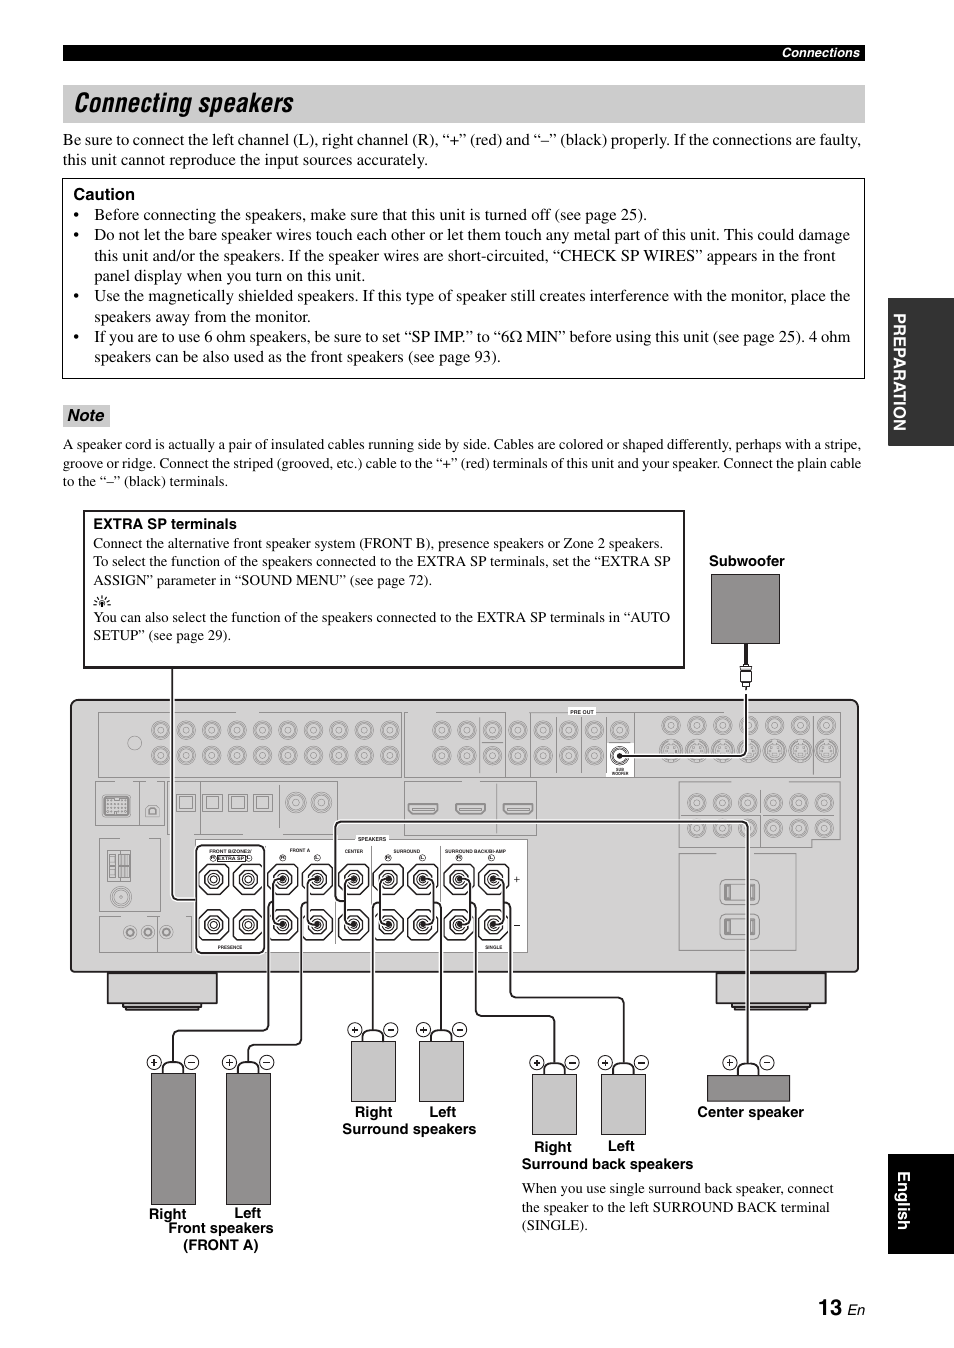 Connecting speakers, P  13 | Yamaha RX-V661 User Manual | Page 17 / 130